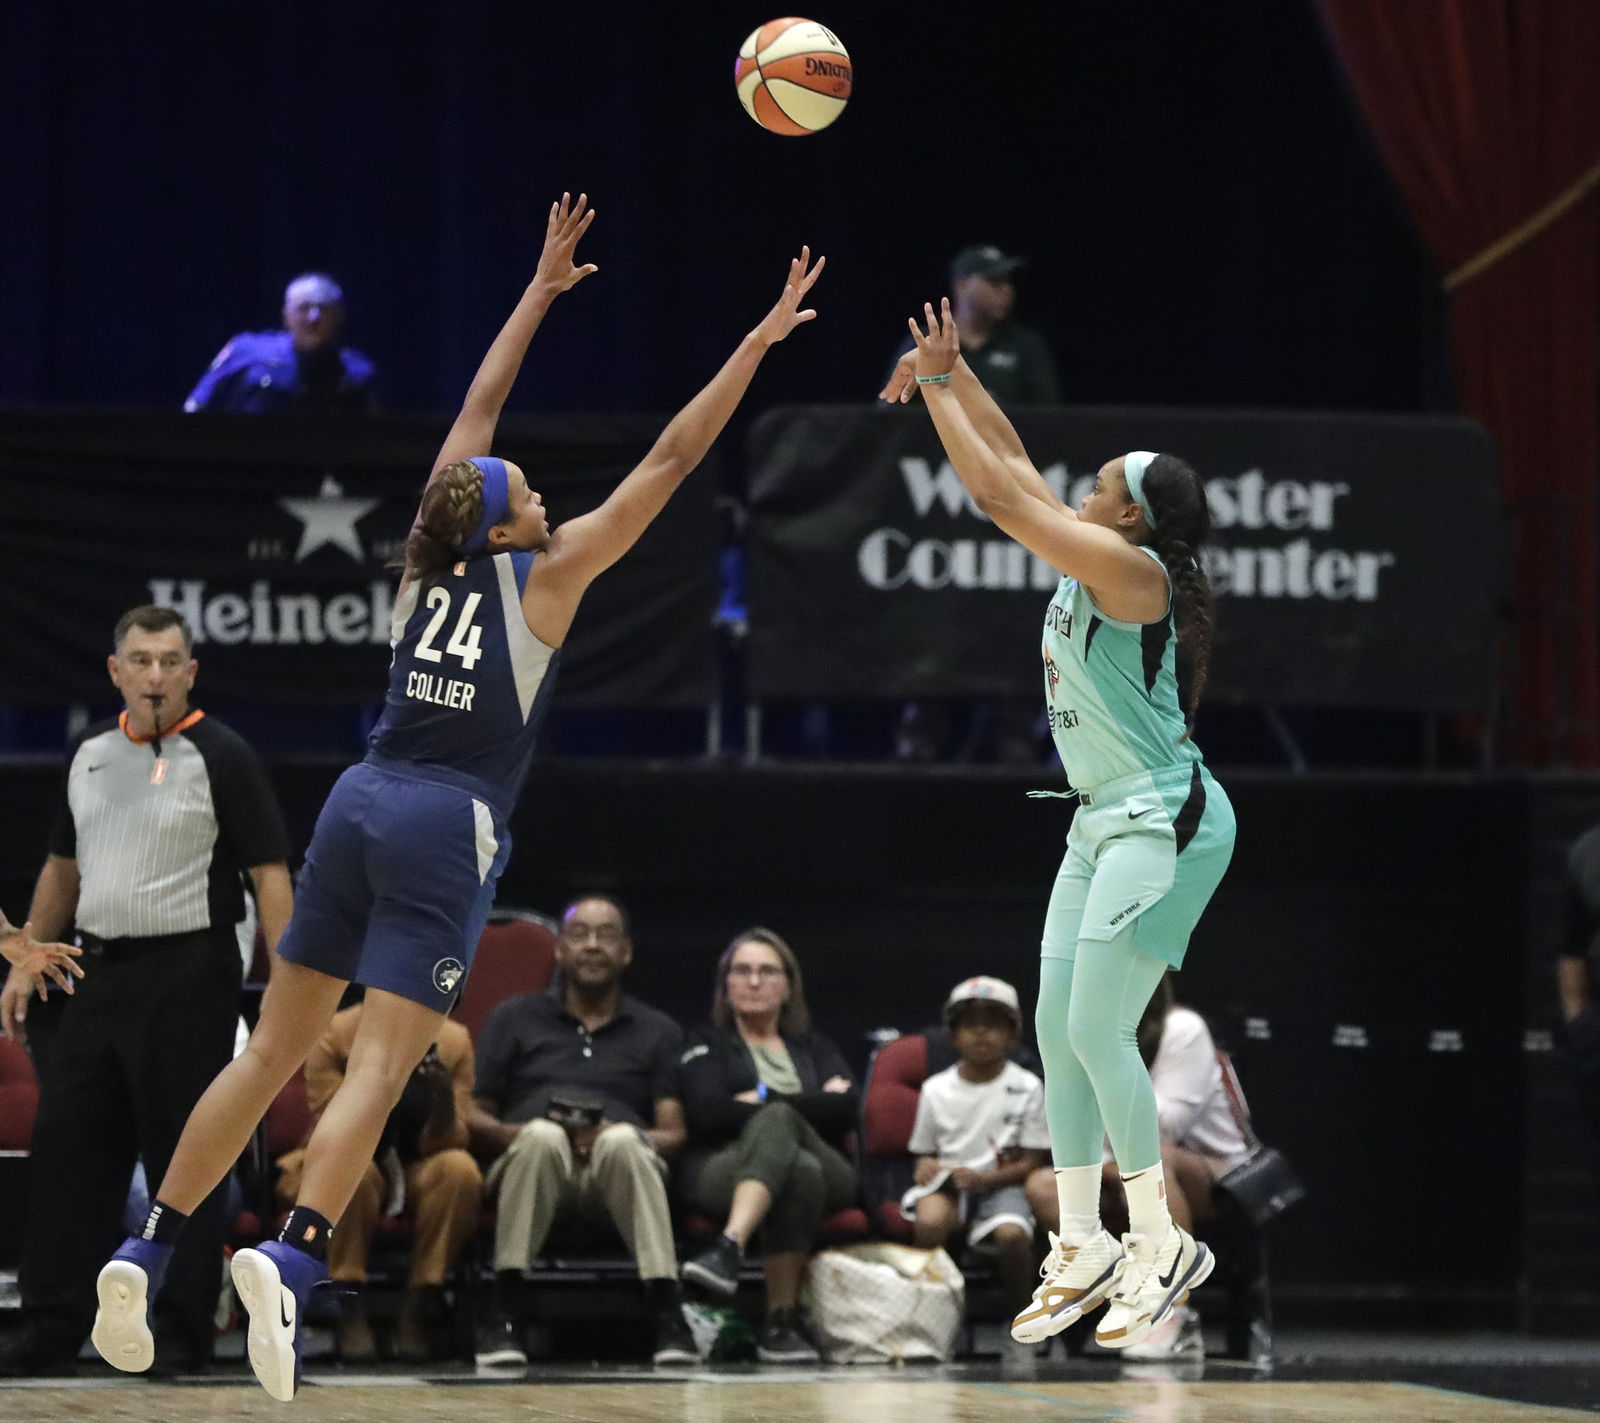 Minnesota Lynx forward Napheesa Collier (24) defends on a 3-point shot by New York Liberty's Brittany Boyd during the second half of a WNBA basketball game Tuesday, Aug. 13, 2019, in White Plains, N.Y. The Lynx won 89-73. (AP Photo/Kathy Willens)